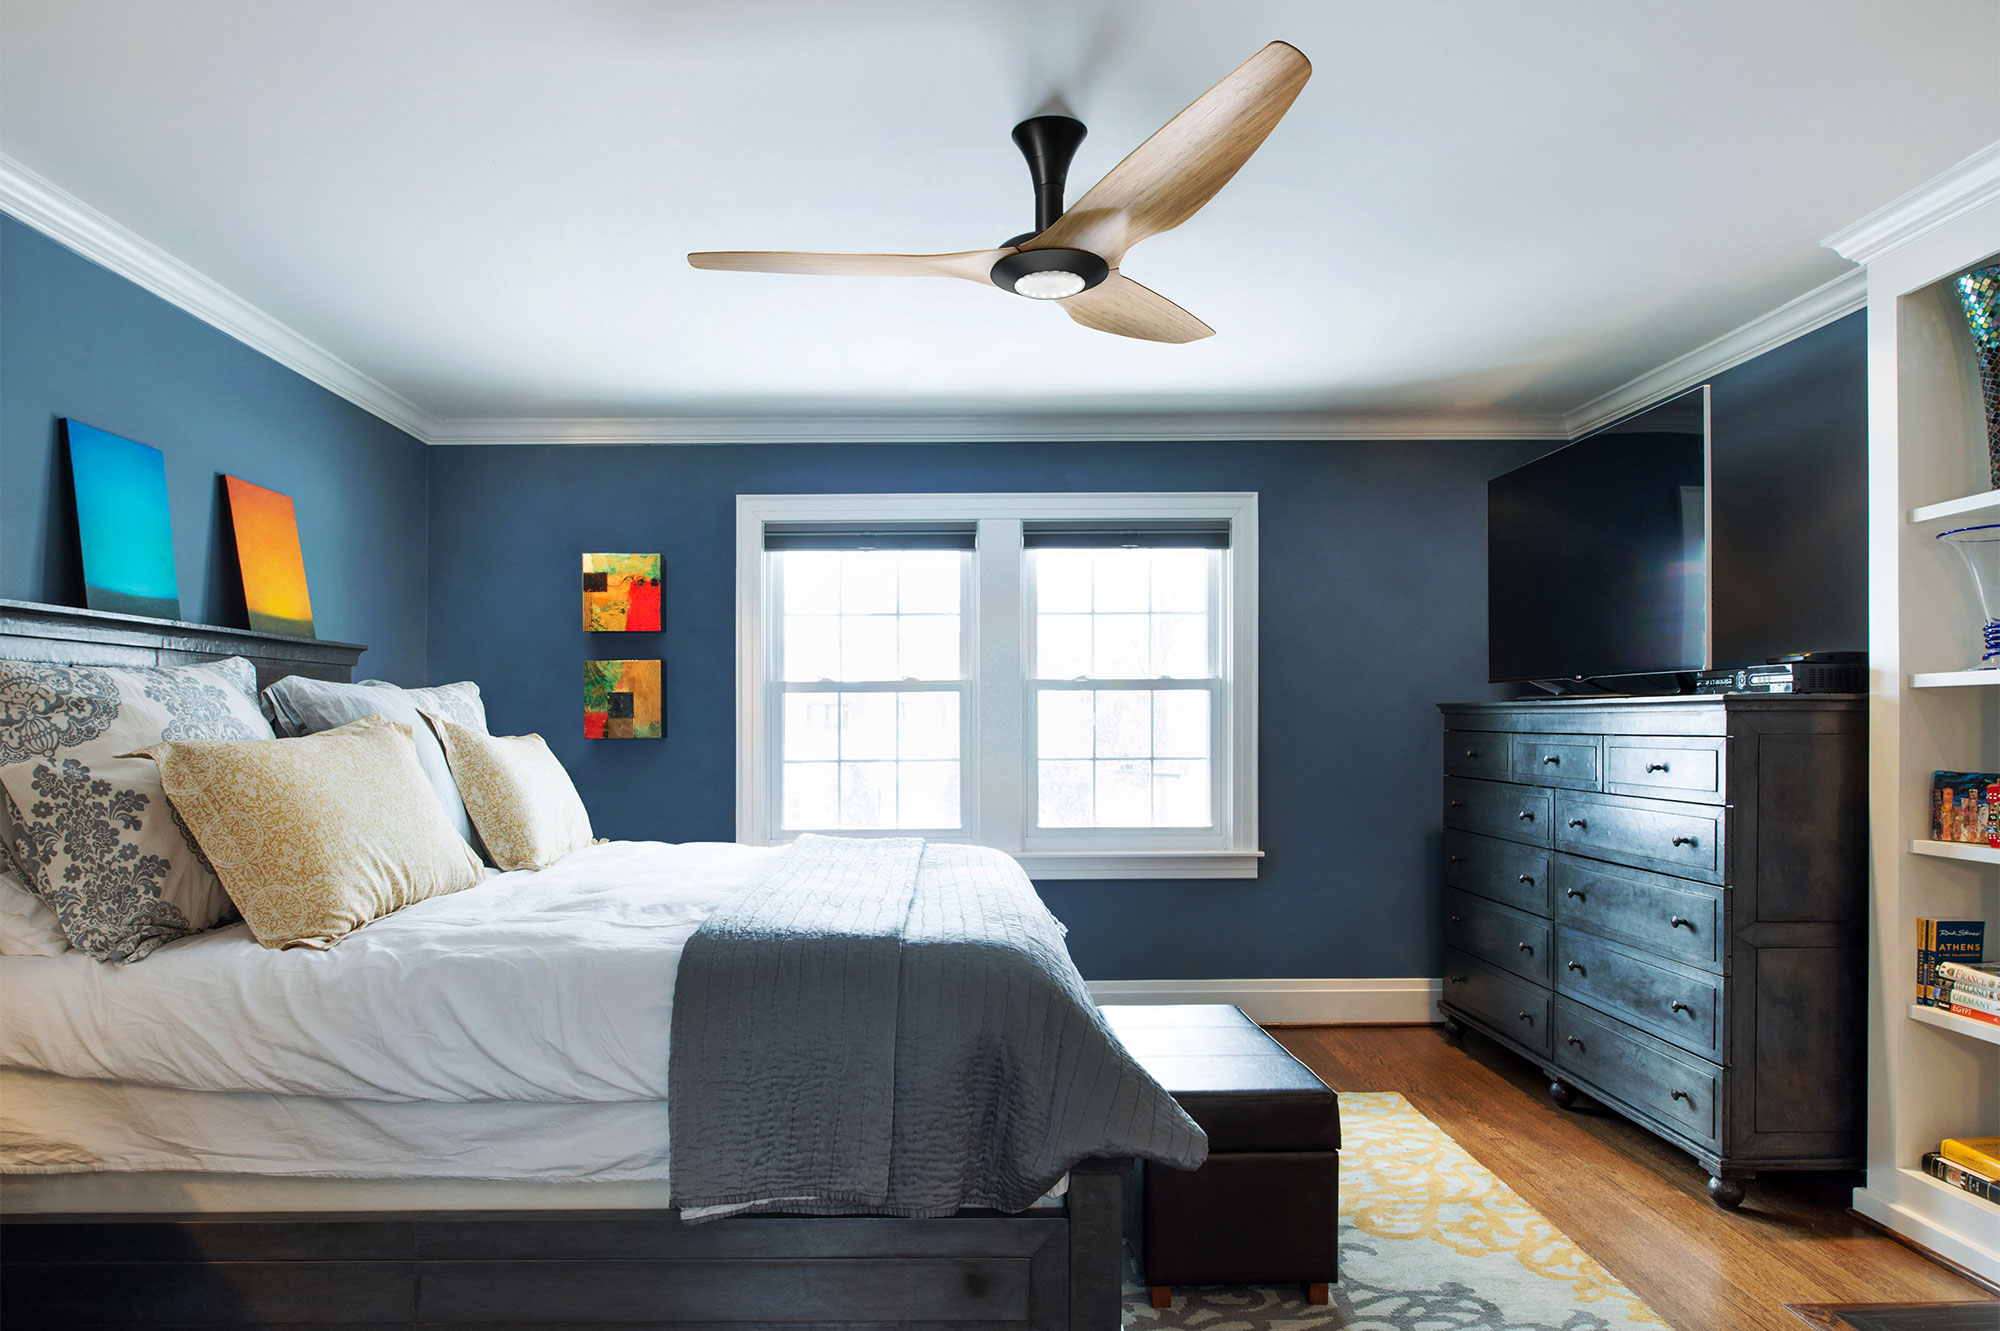 Does A Ceiling Fan Lower The Room Temperature